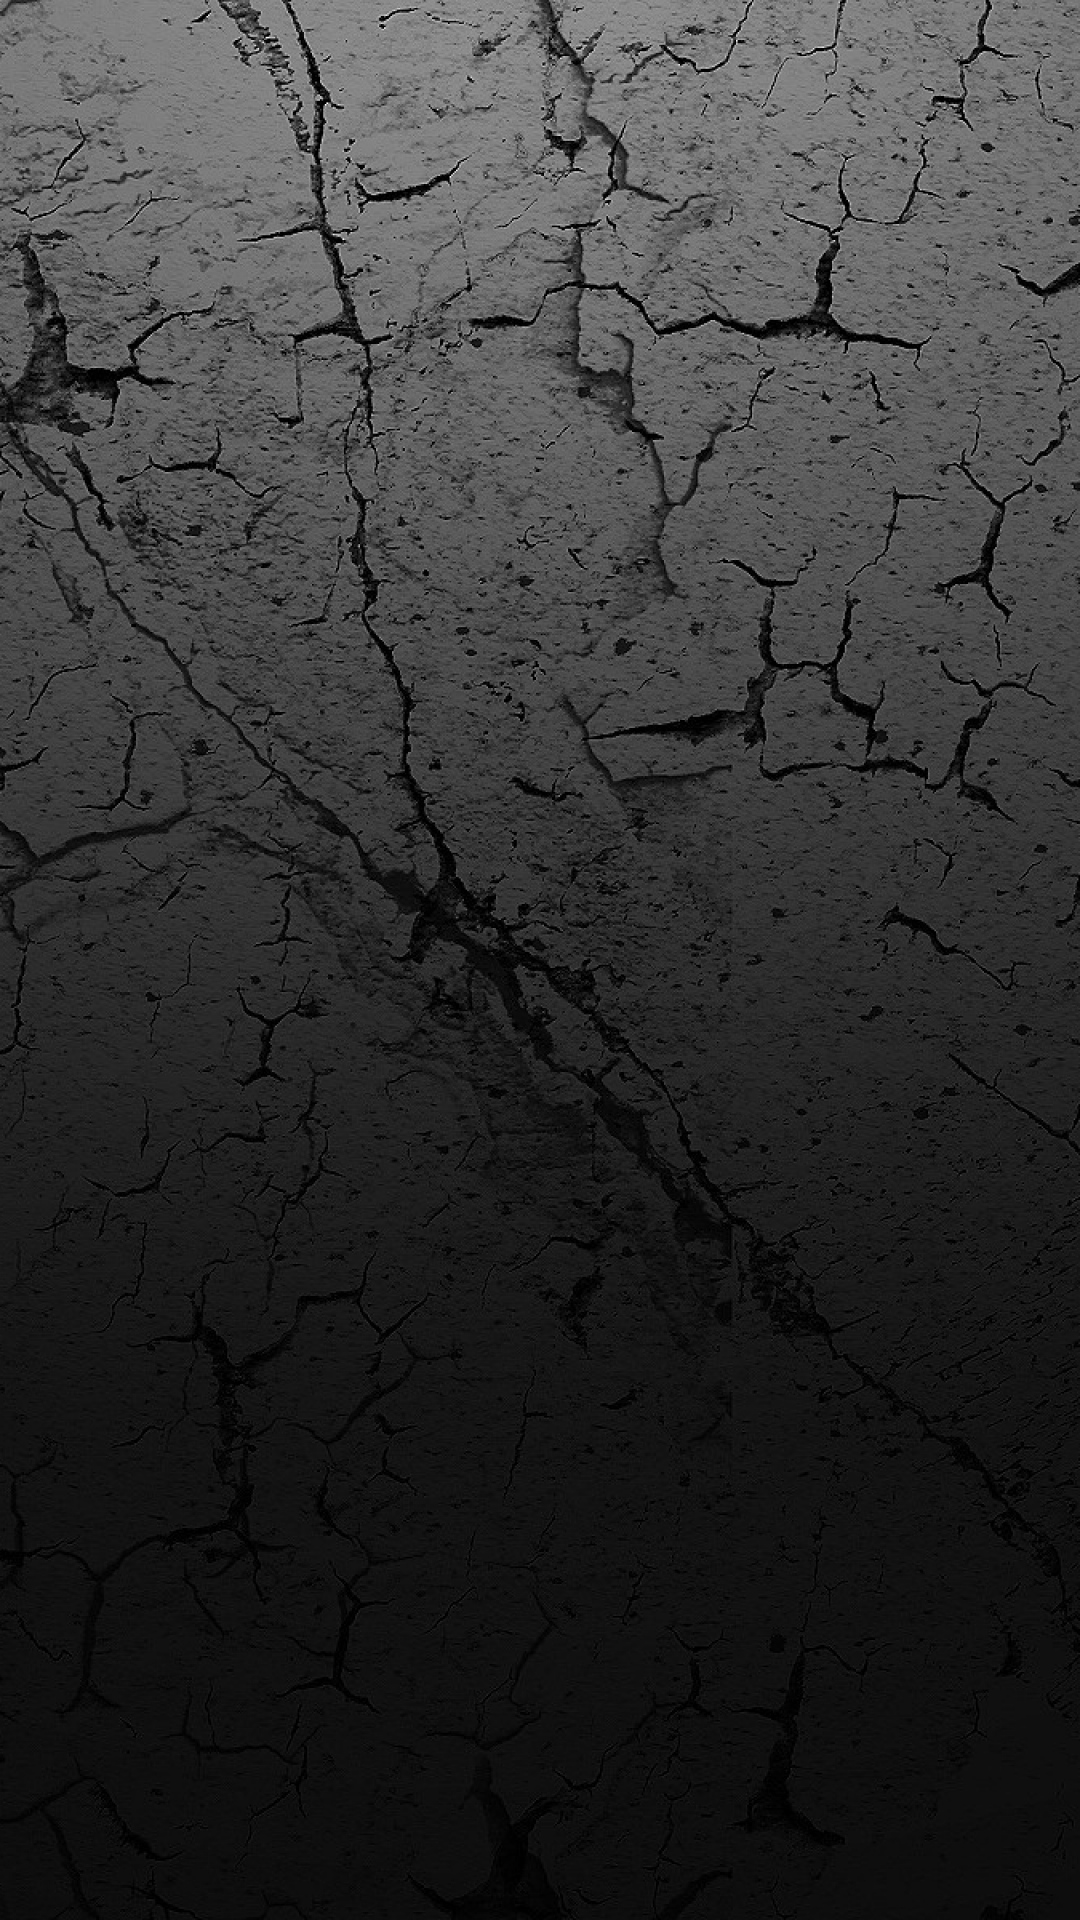 Cracked Screen Wallpaper Iphone X Cracked Screen Hd Background For Android Pixelstalk Net